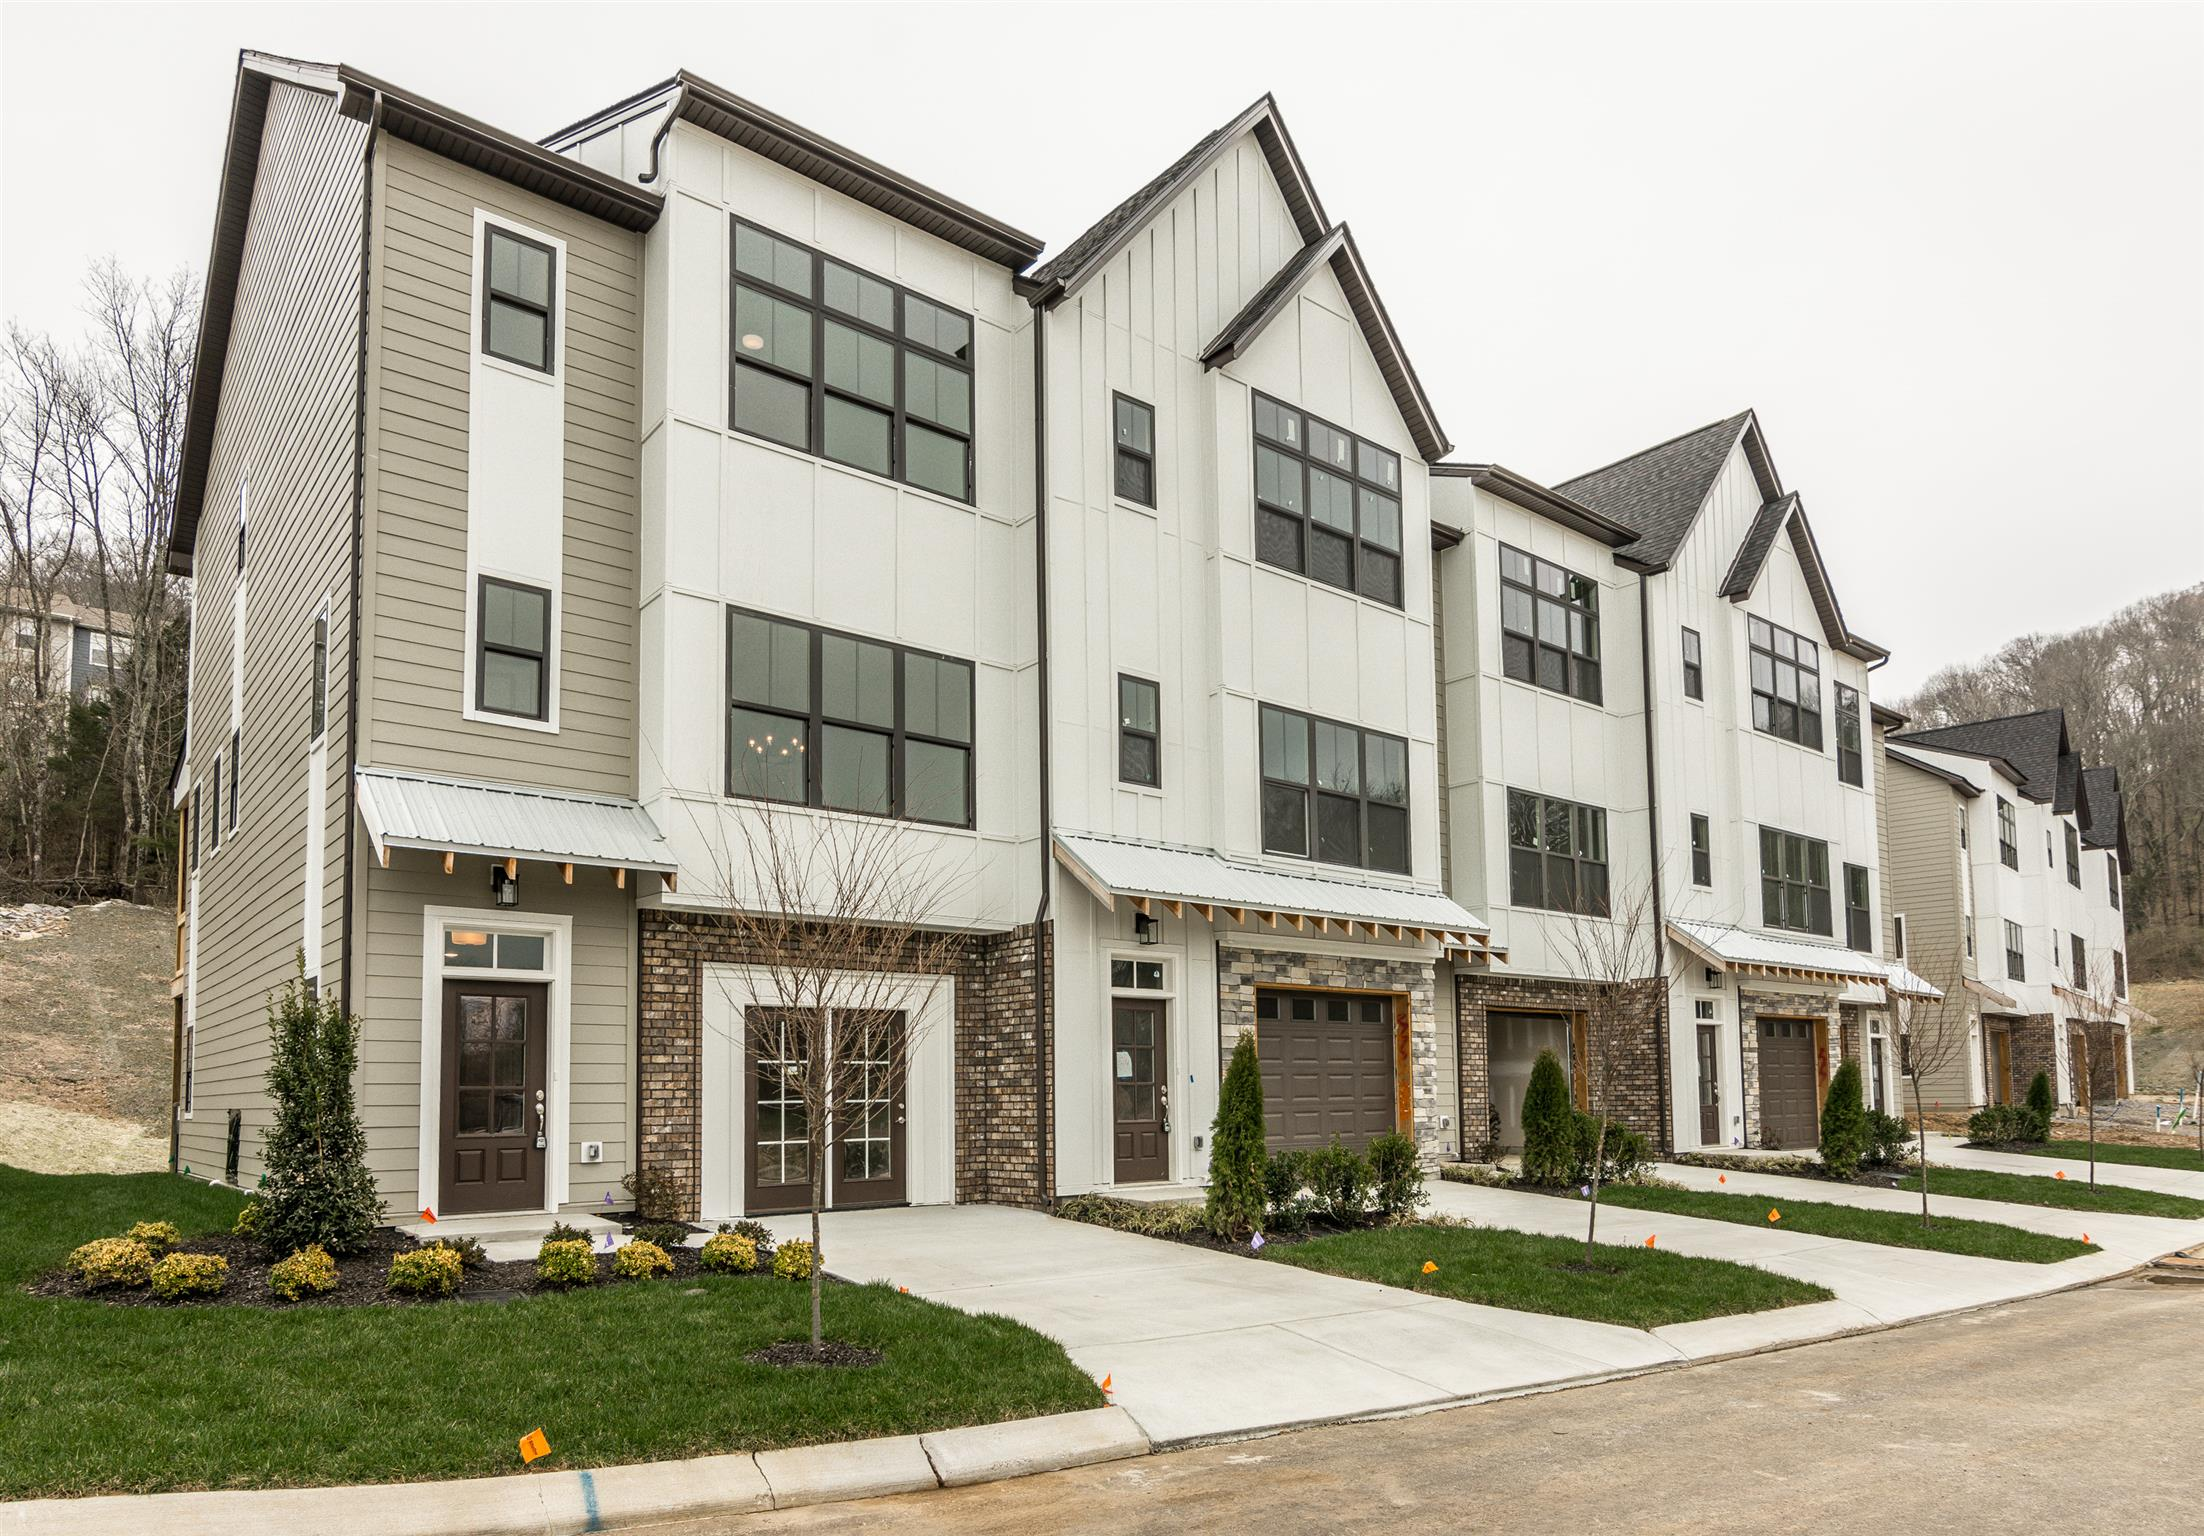 167 Stonecrest Drive #34, Bellevue in Davidson County County, TN 37221 Home for Sale